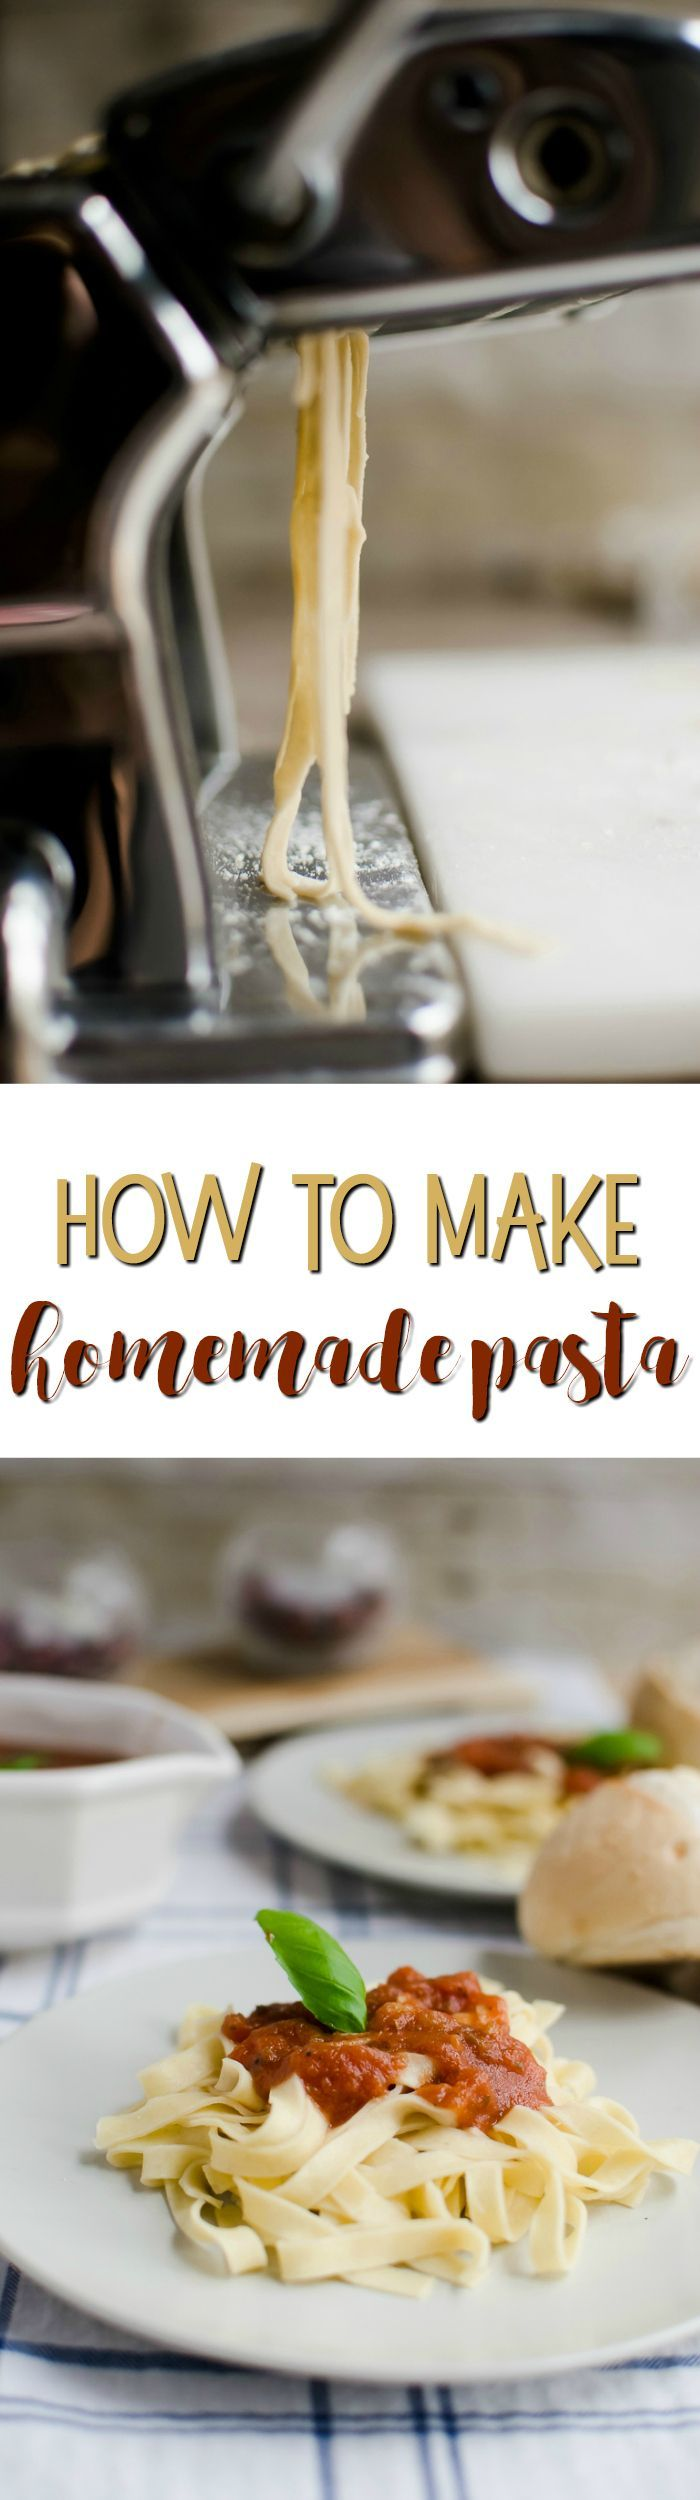 how to make pasta from scratch by hand